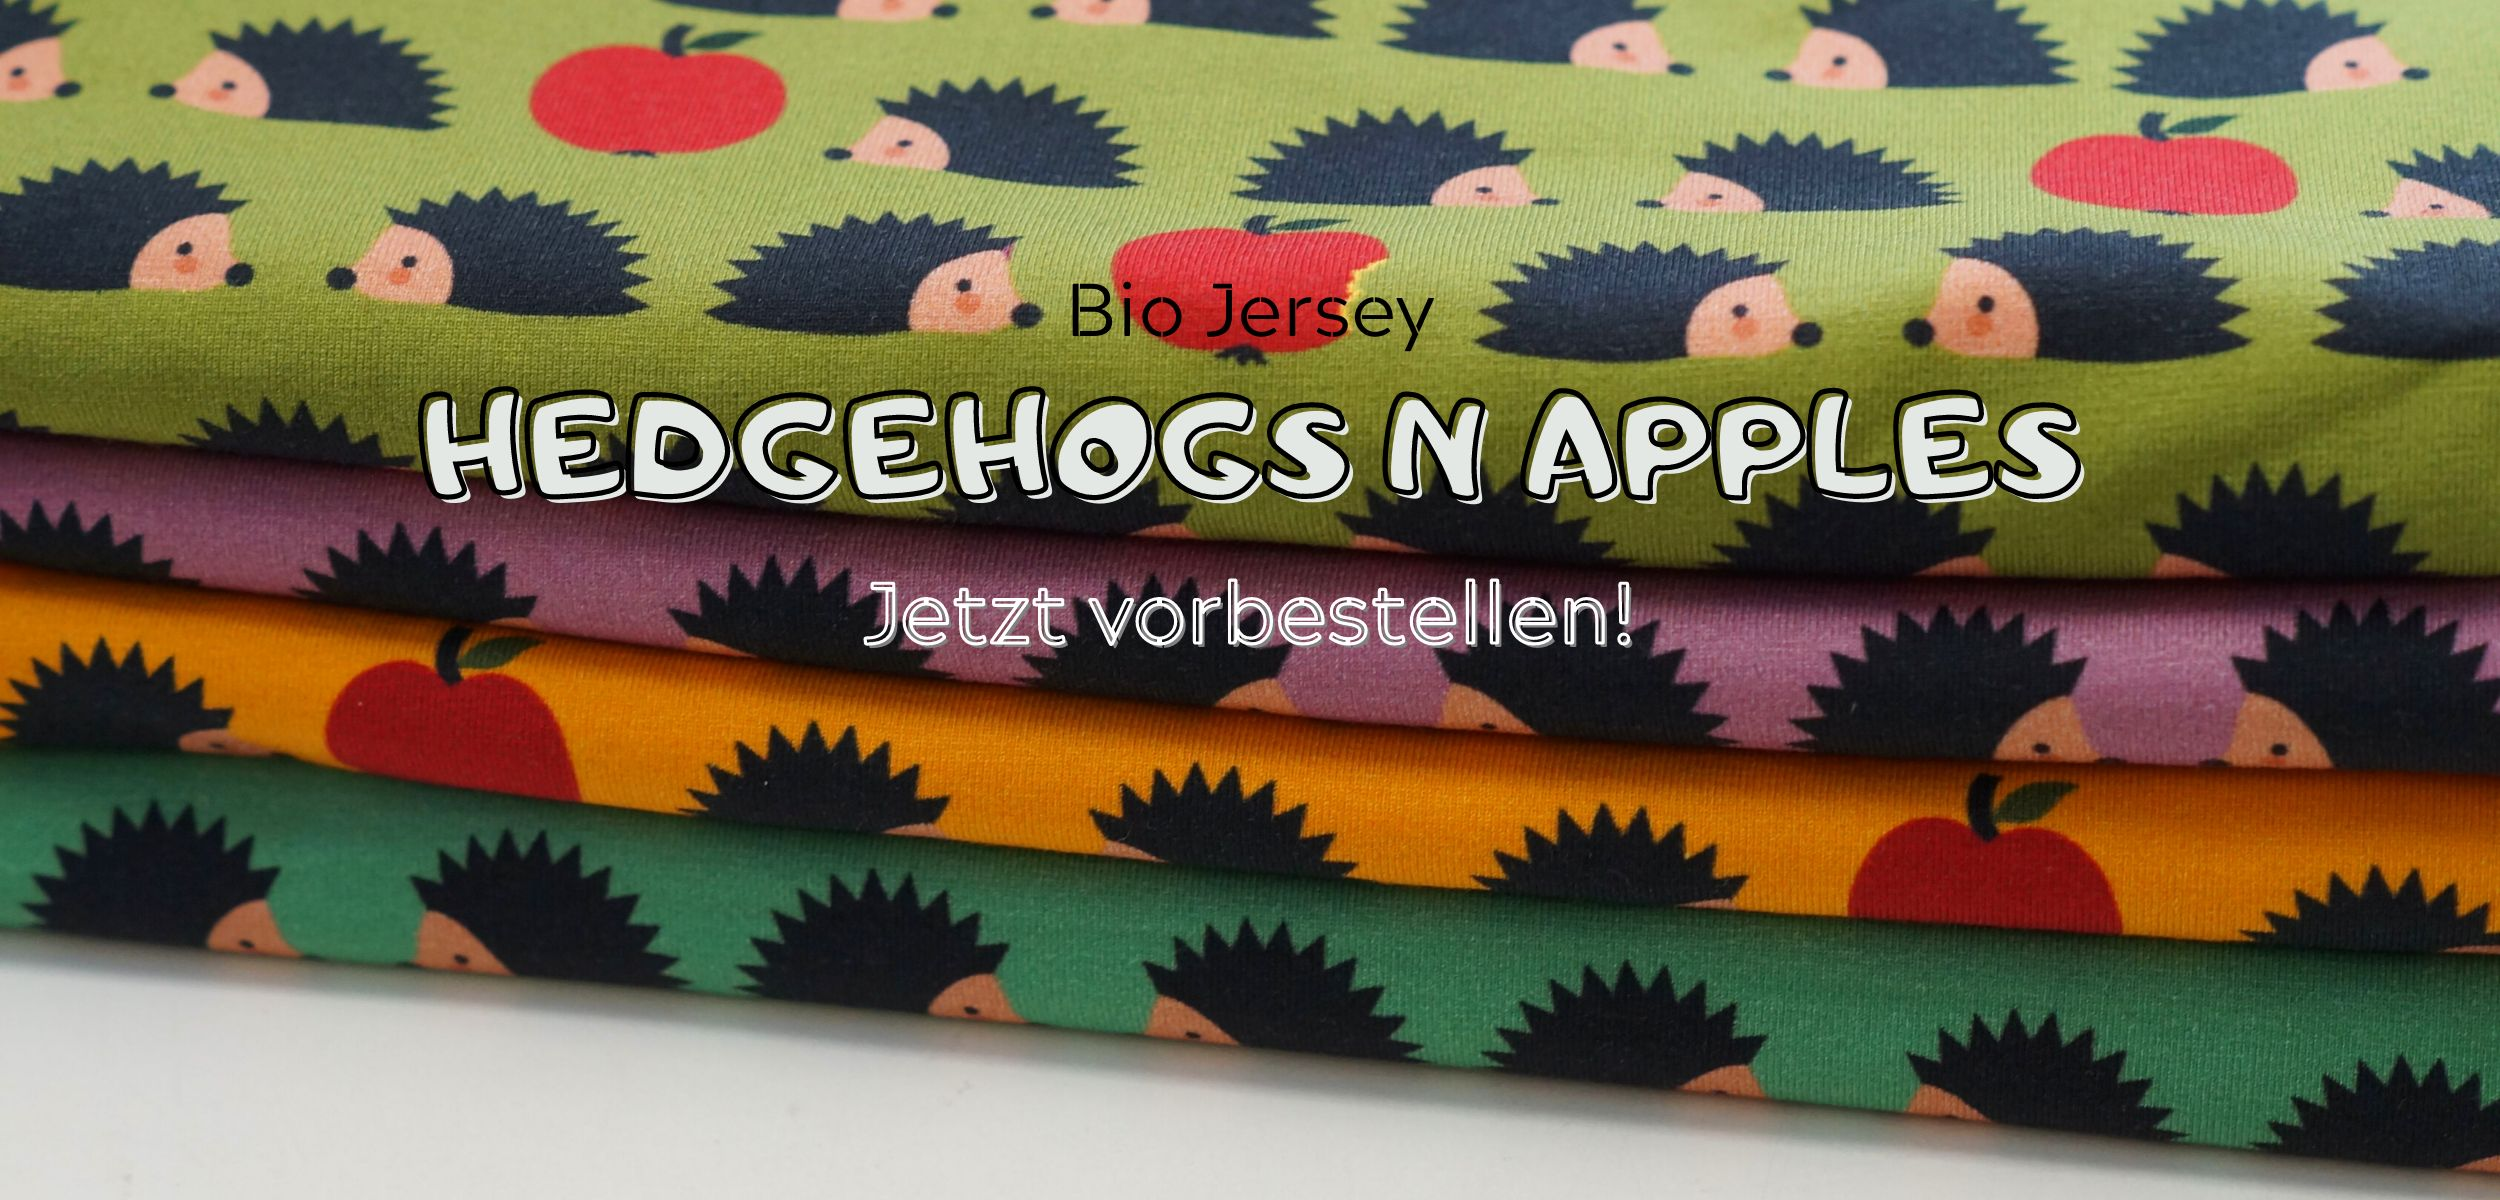 Shopbanner Hedgehogs n apples